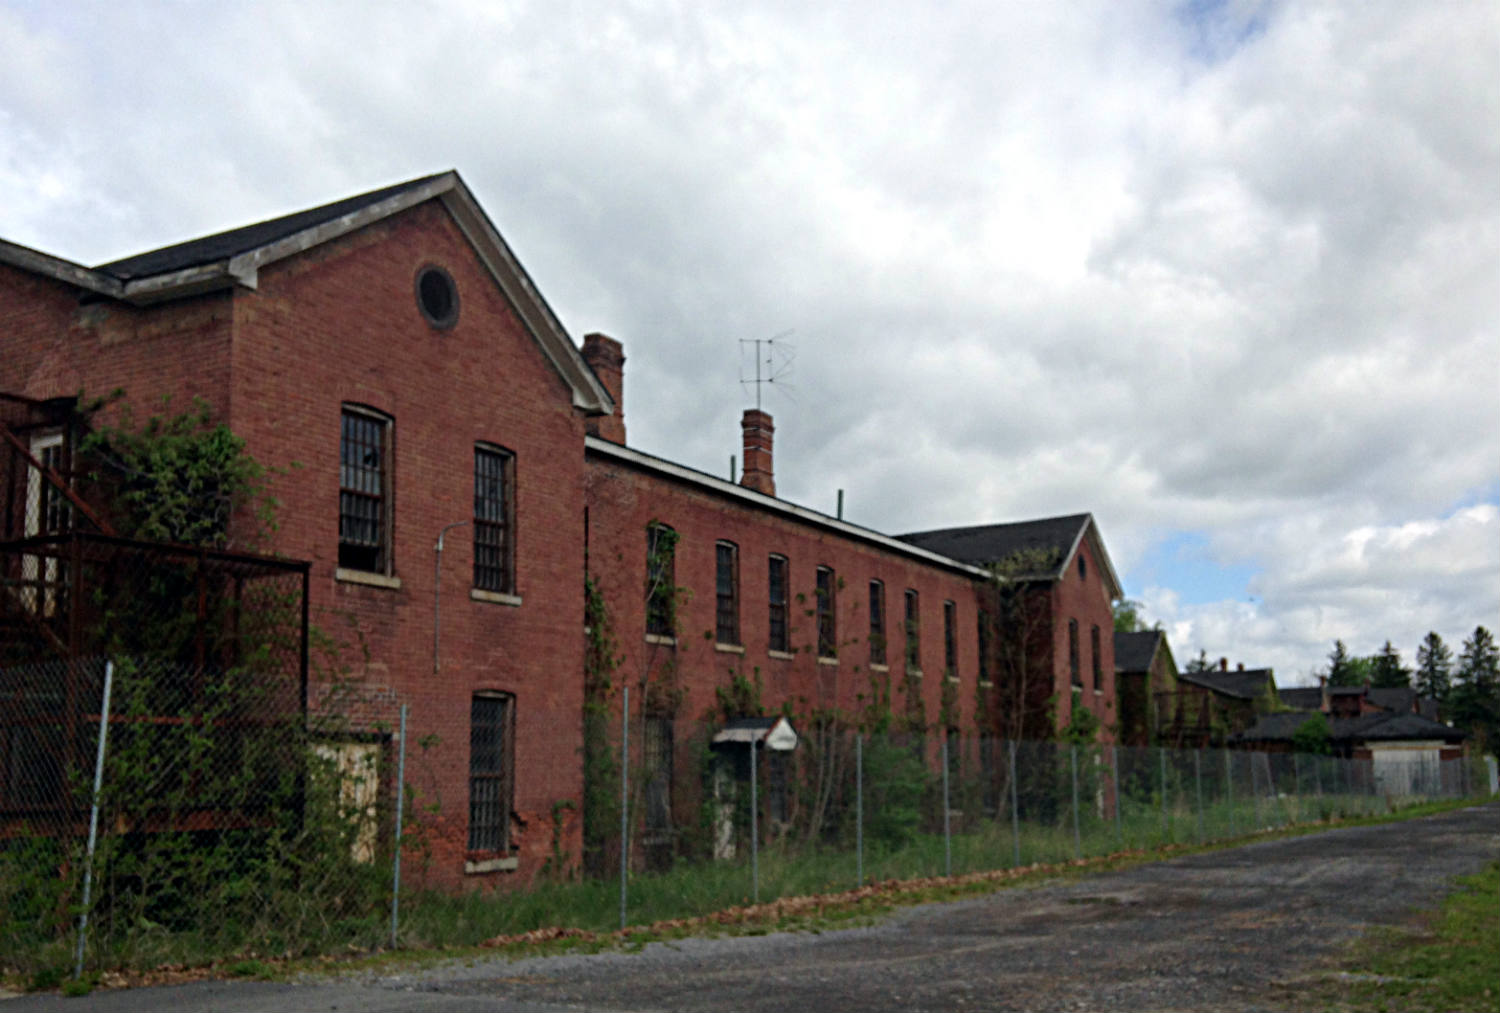 Abandoned Buildings in Ovid, NY at the Willard Asylum